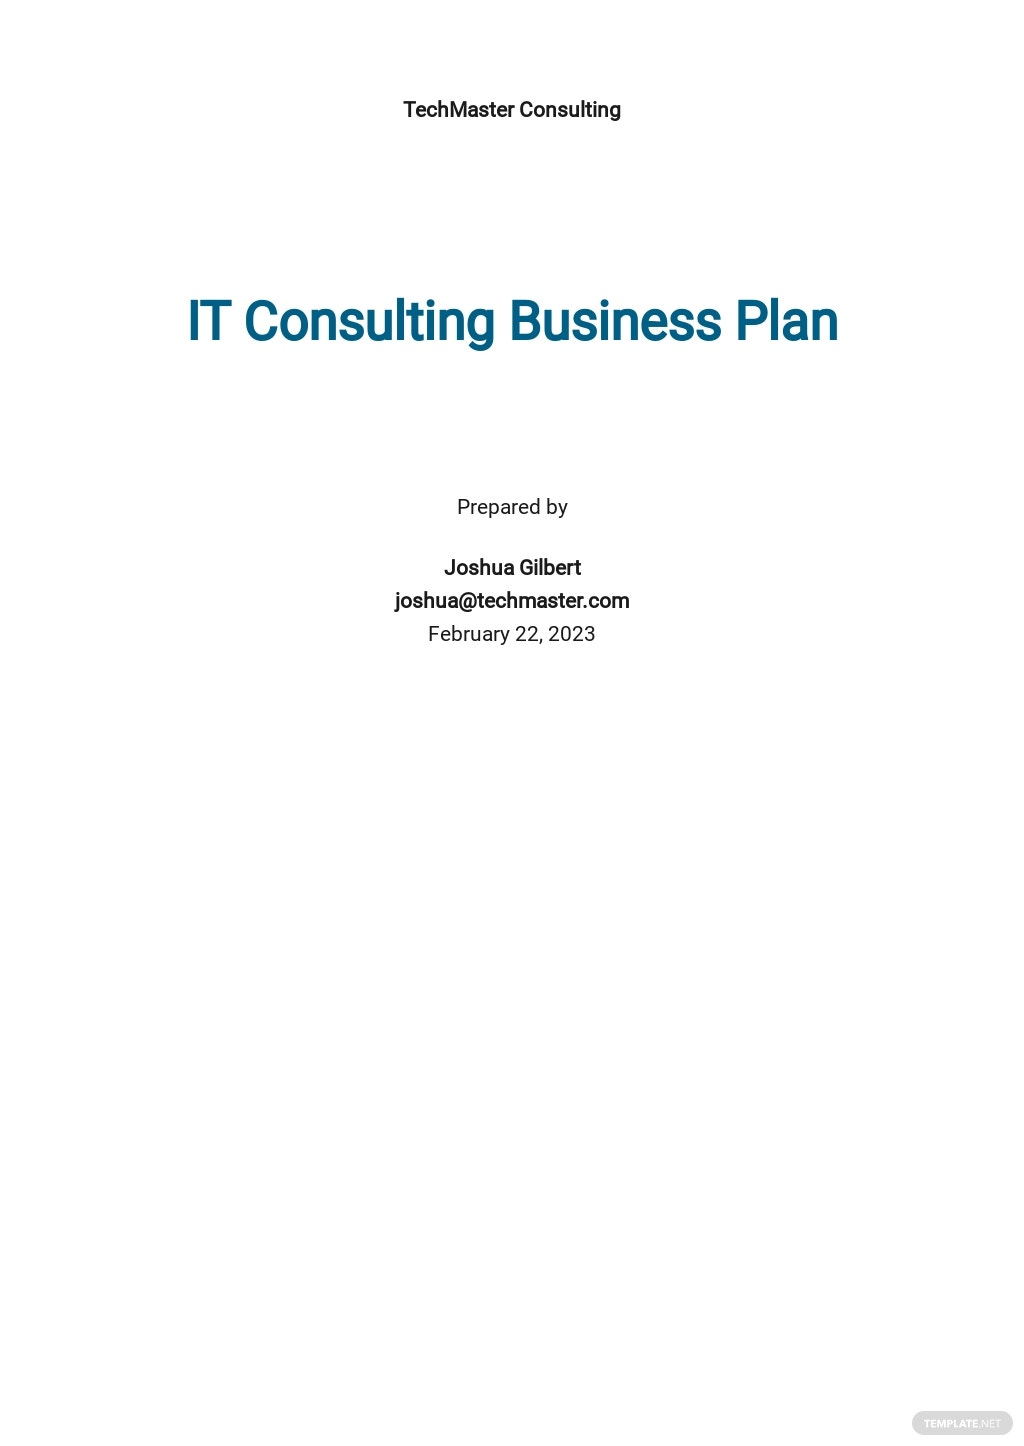 IT Consulting Business Plan Template